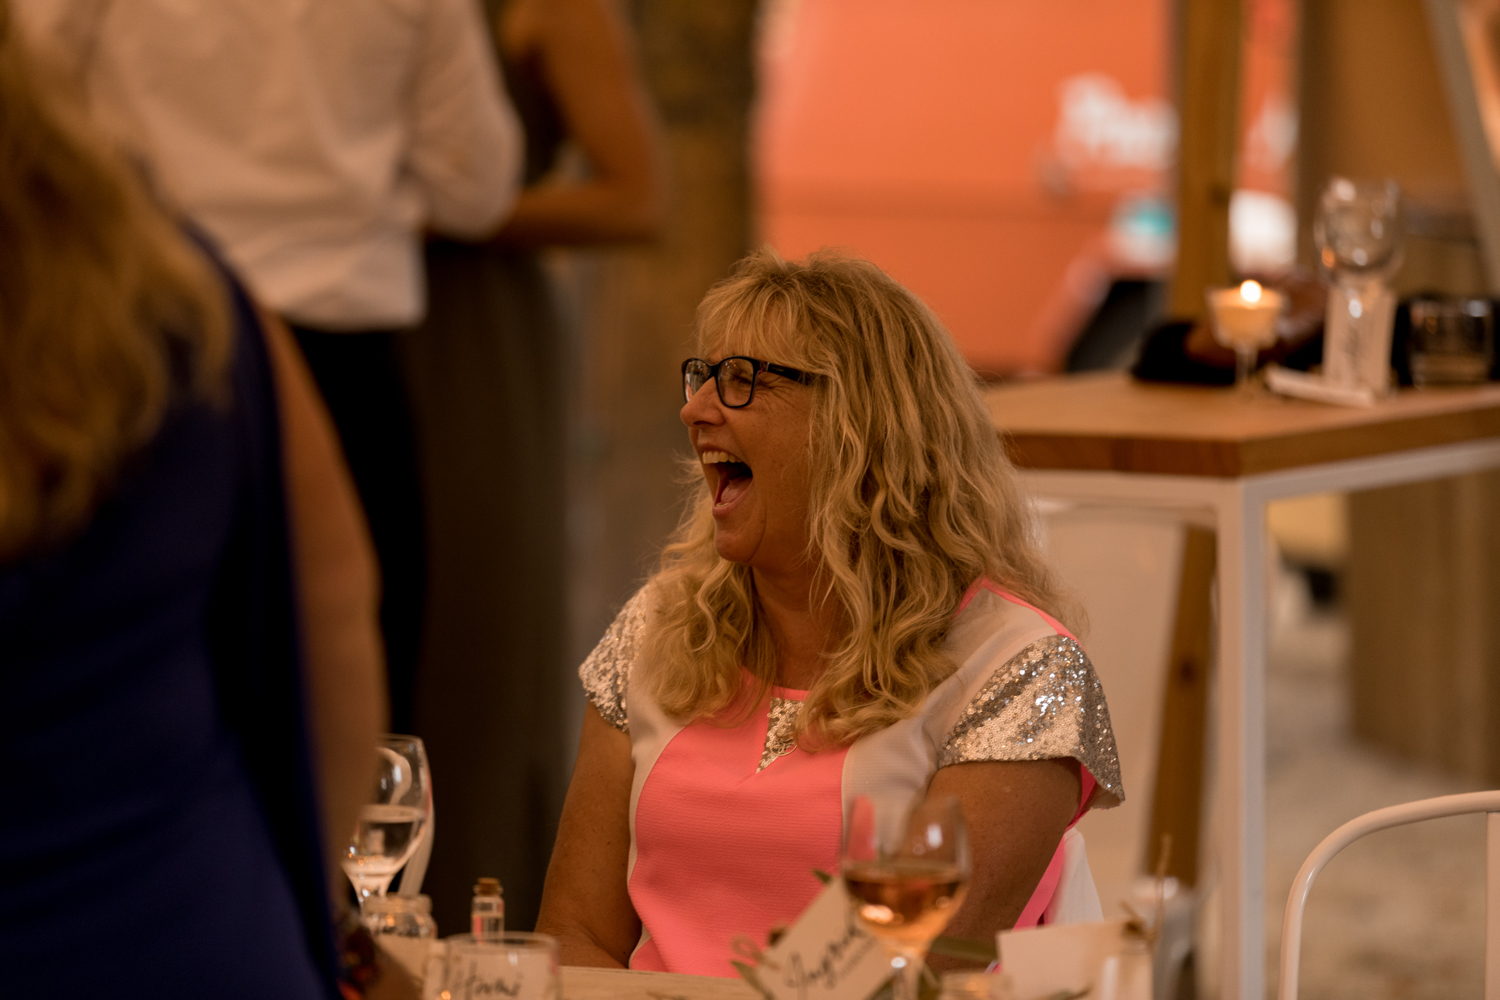 black-barn-winery-wedding-hawkes-bay-wedding-photographer-guest-in-hot-pink-dress-laughing.jpg